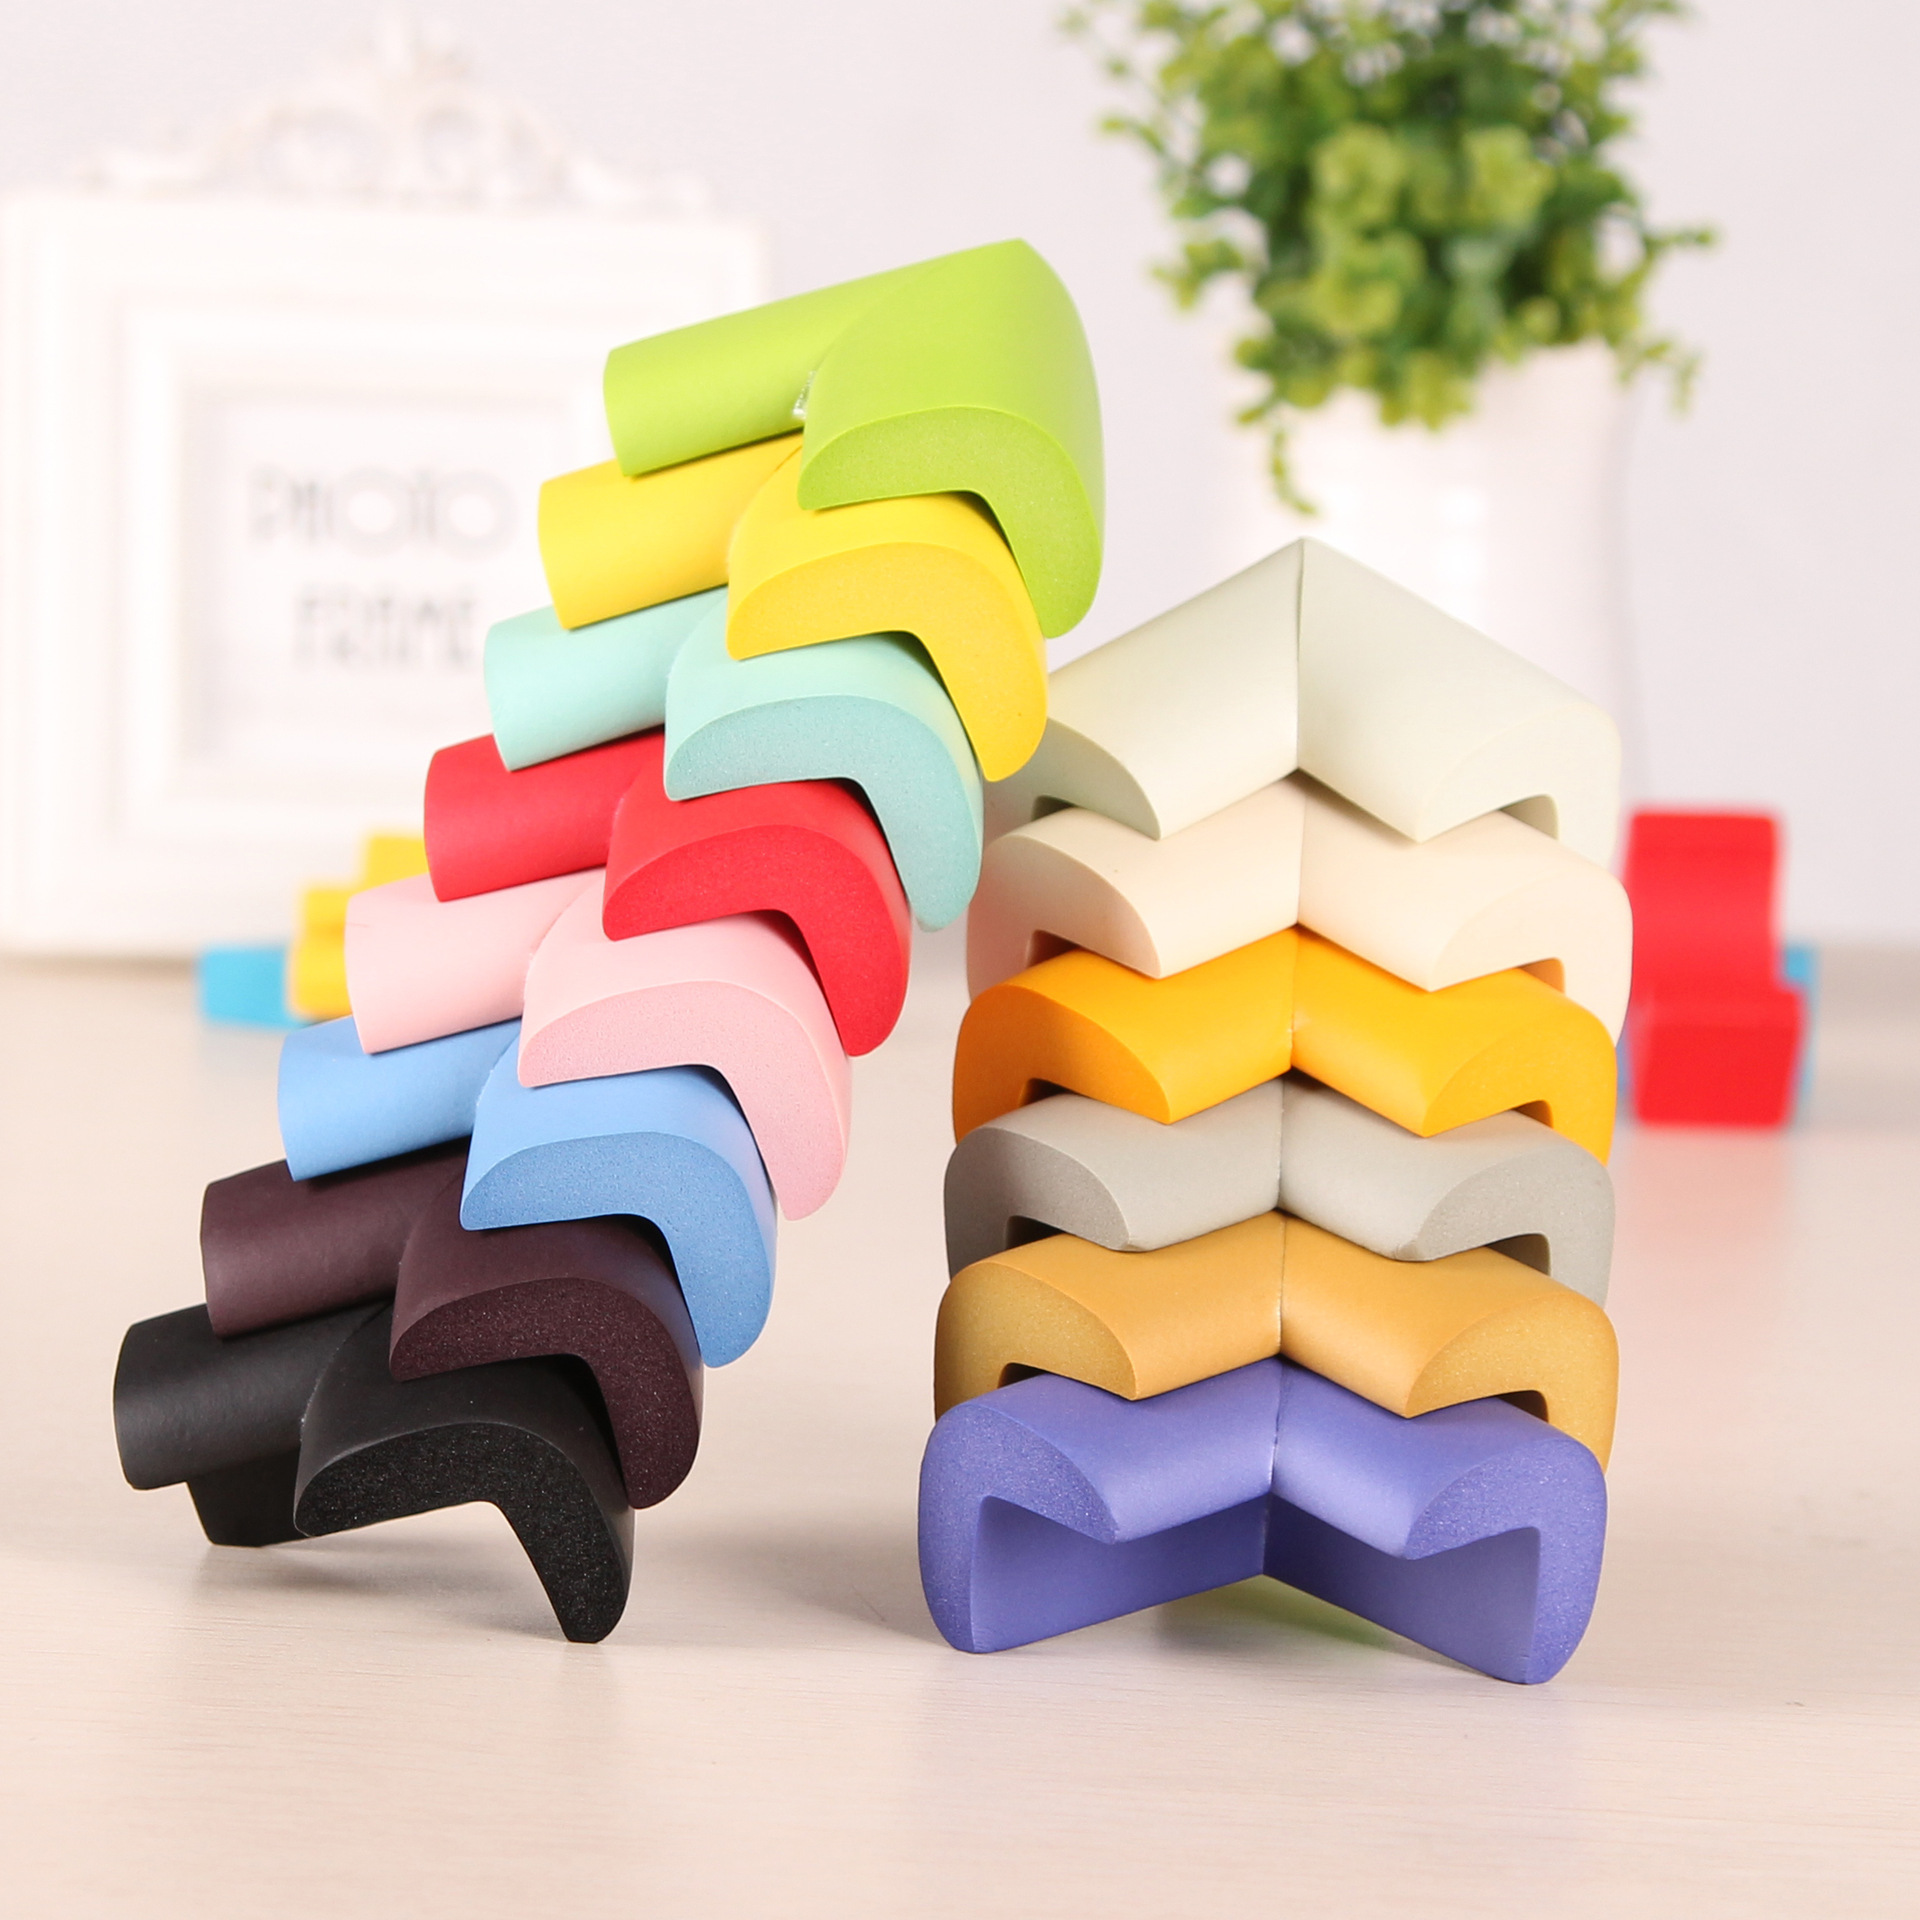 4PCs Colorful Baby Safety Protector Table Corner Desk Protection Children Anticollision Edge Thicken Soft Child Corner Guards